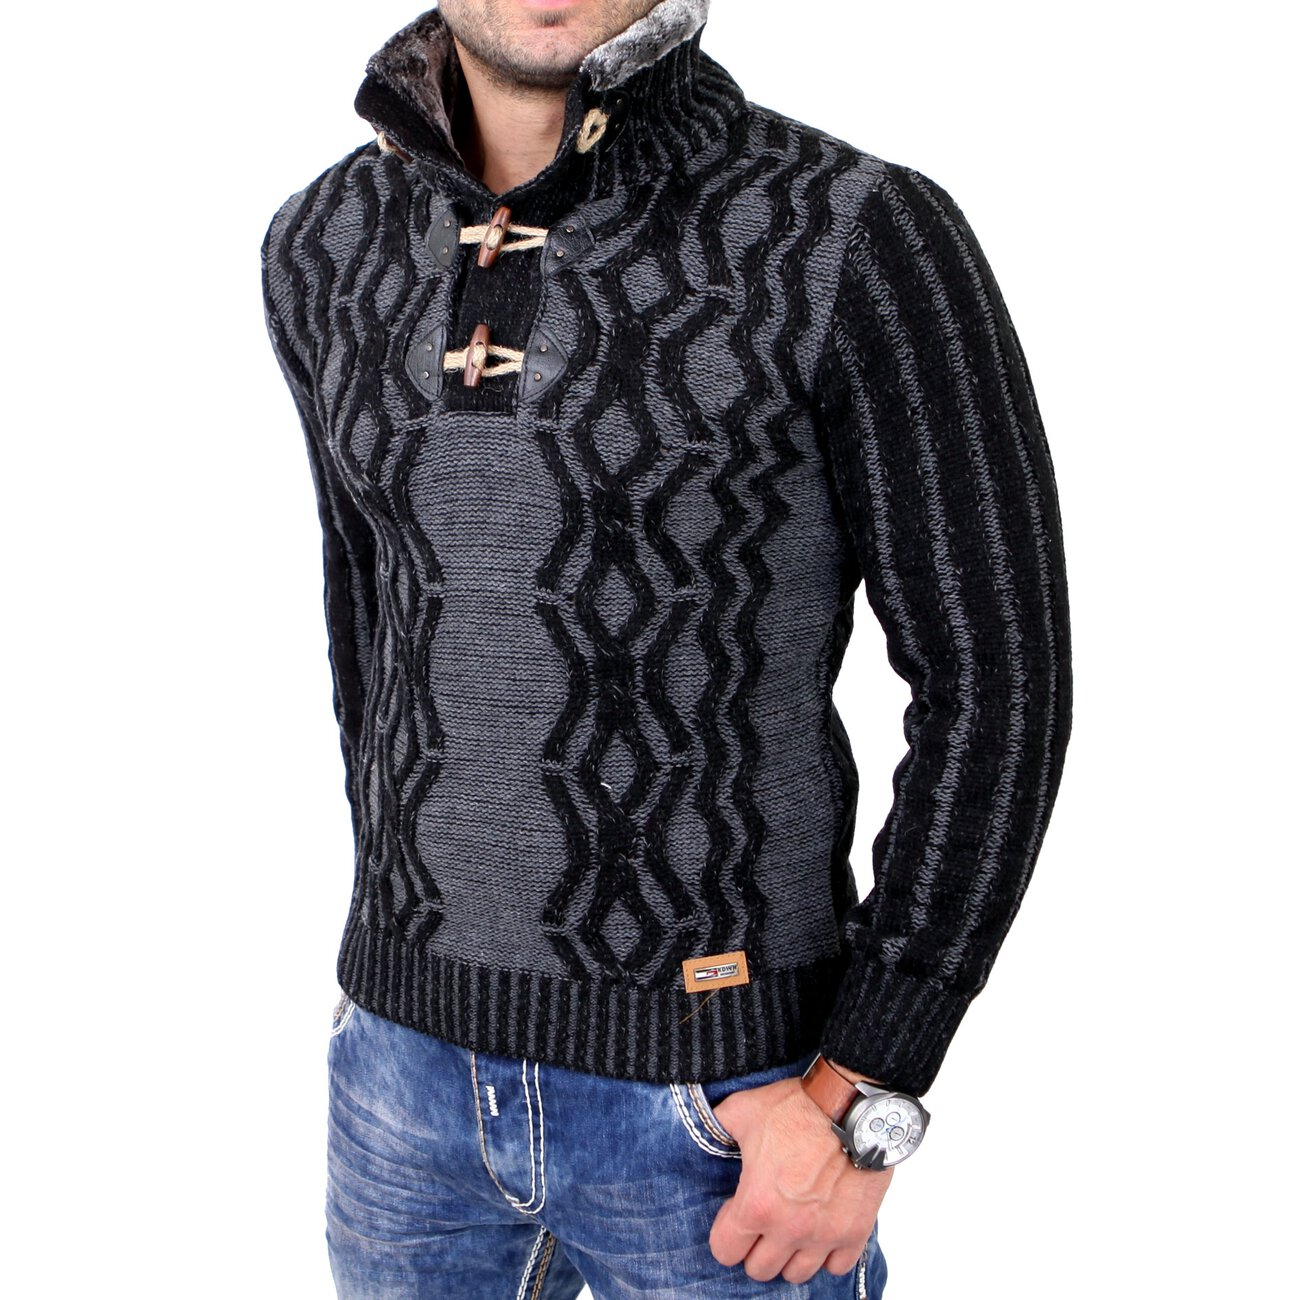 reslad strickpullover herren fellkragen winter pullover. Black Bedroom Furniture Sets. Home Design Ideas